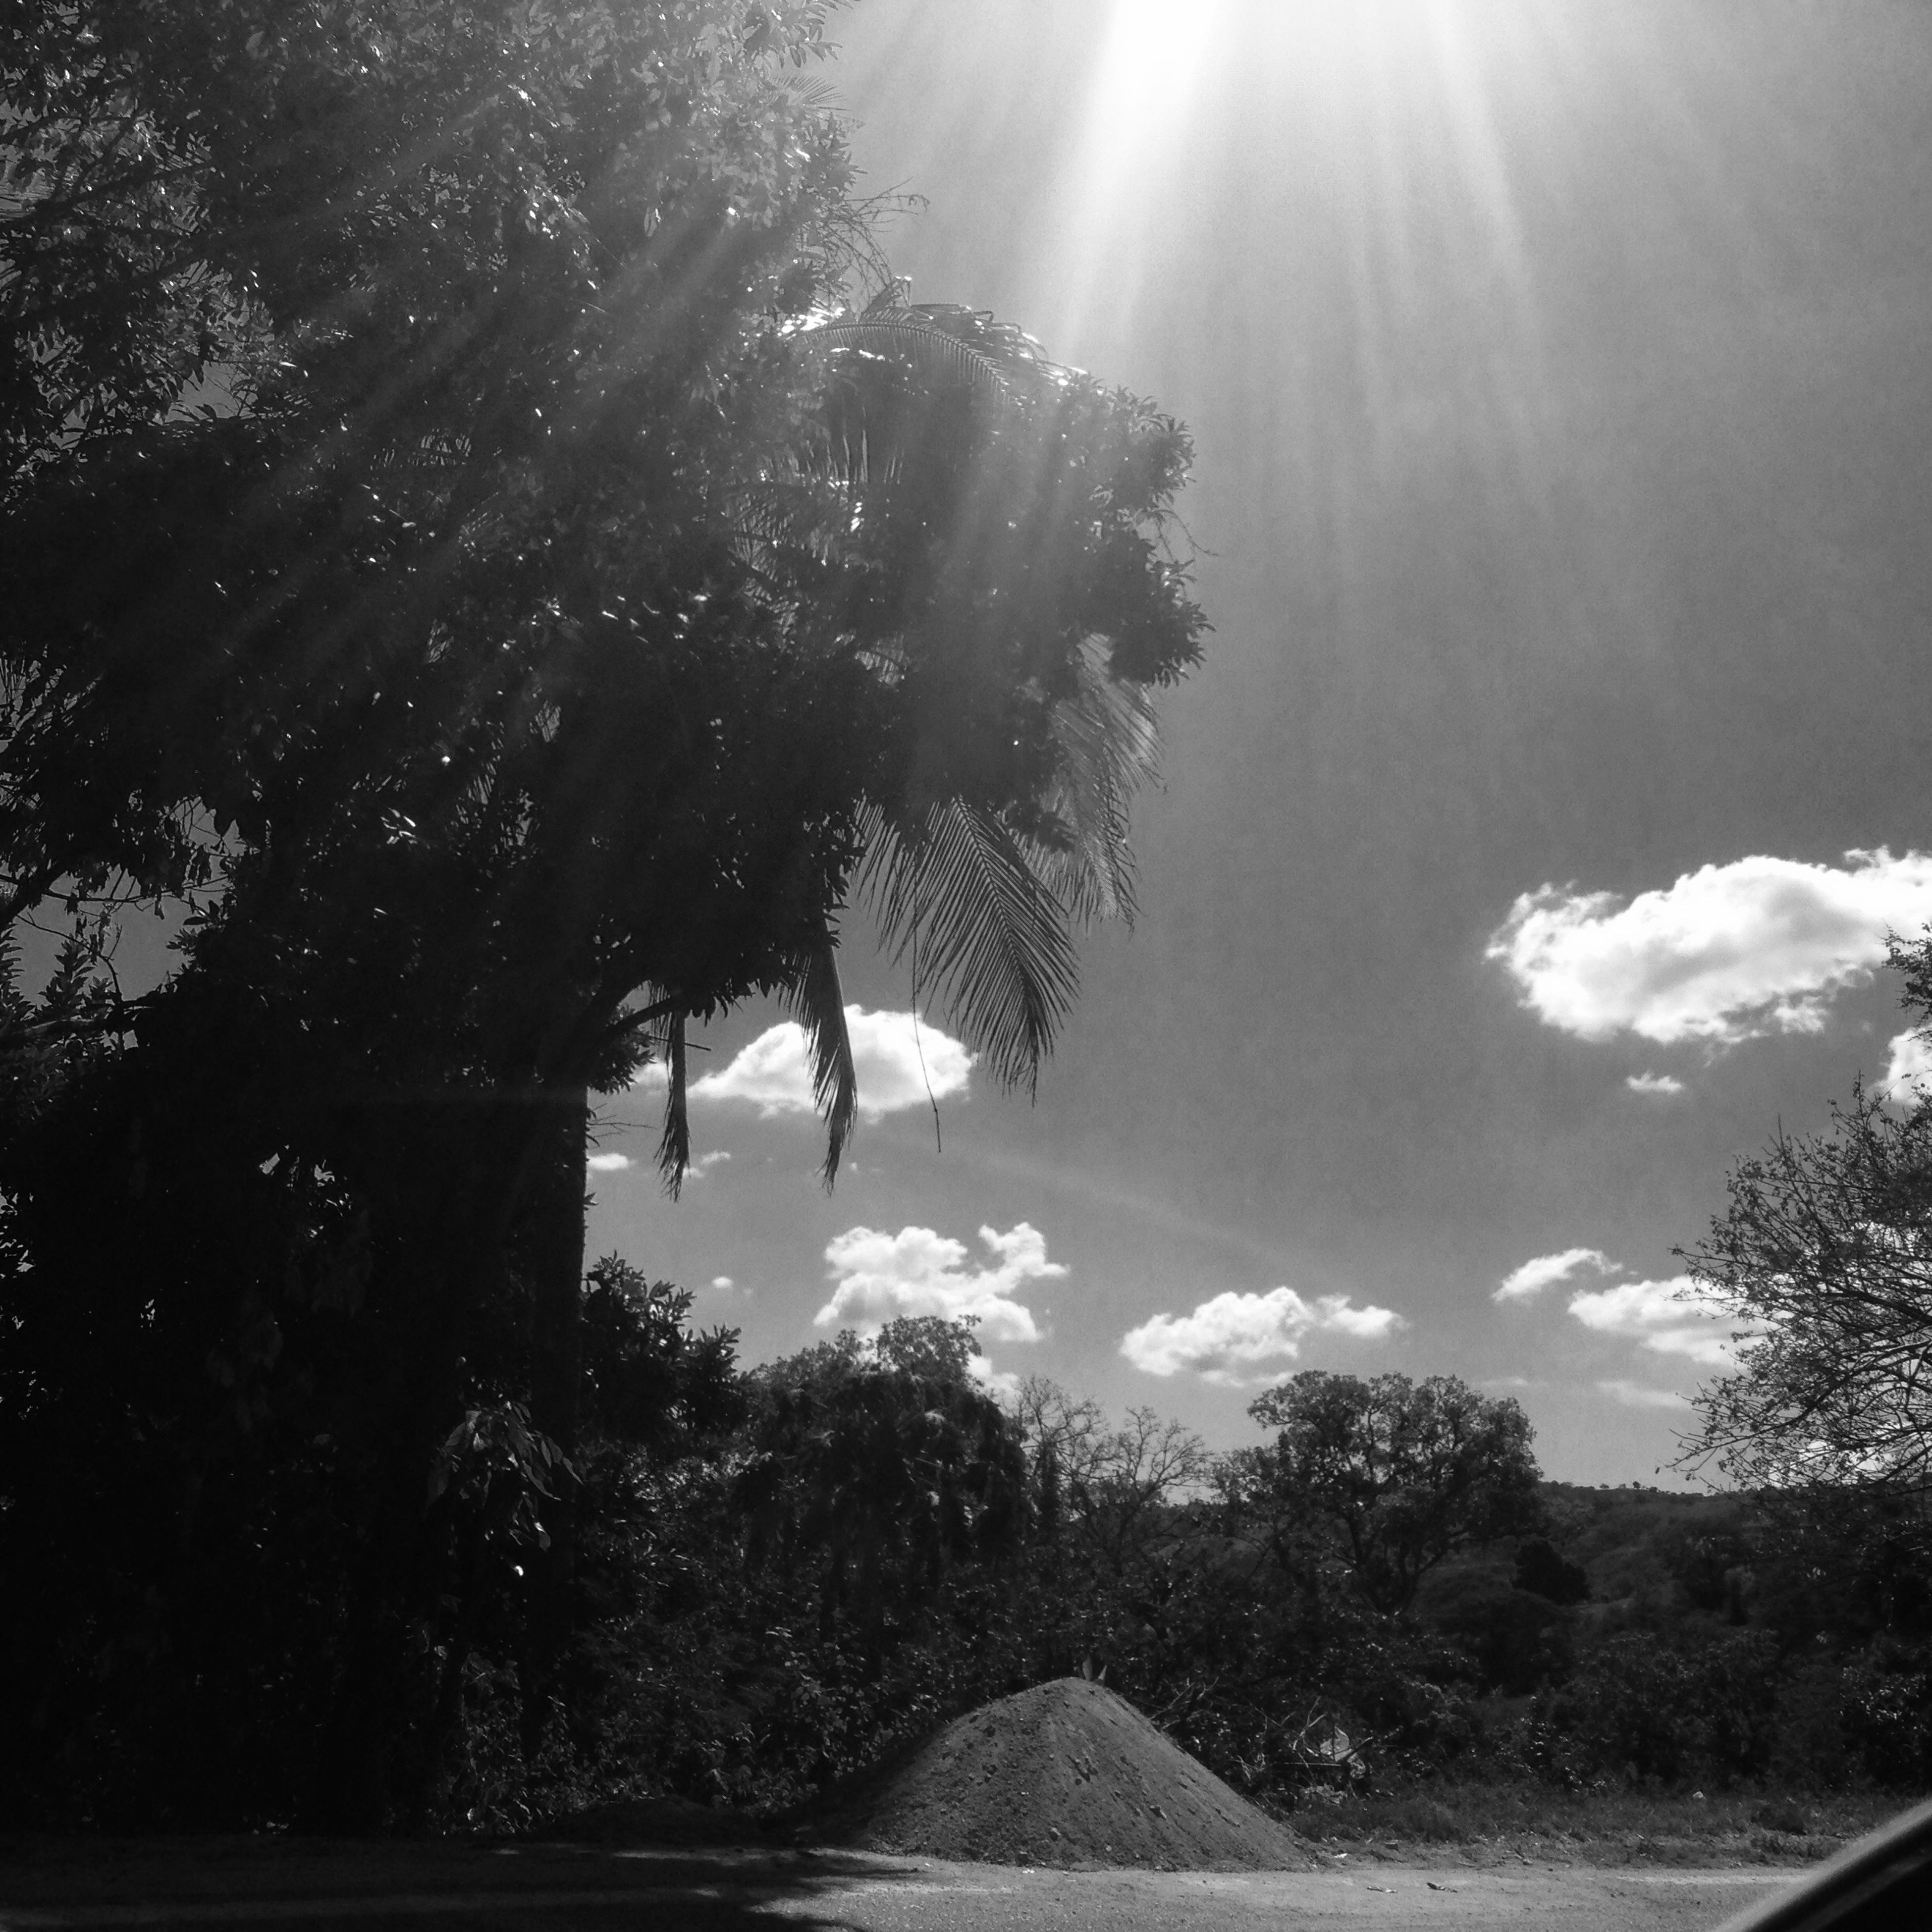 tree, sun, sunlight, transportation, sunbeam, sky, road, the way forward, growth, lens flare, nature, sunny, tranquility, day, no people, outdoors, cloud - sky, beauty in nature, diminishing perspective, tranquil scene